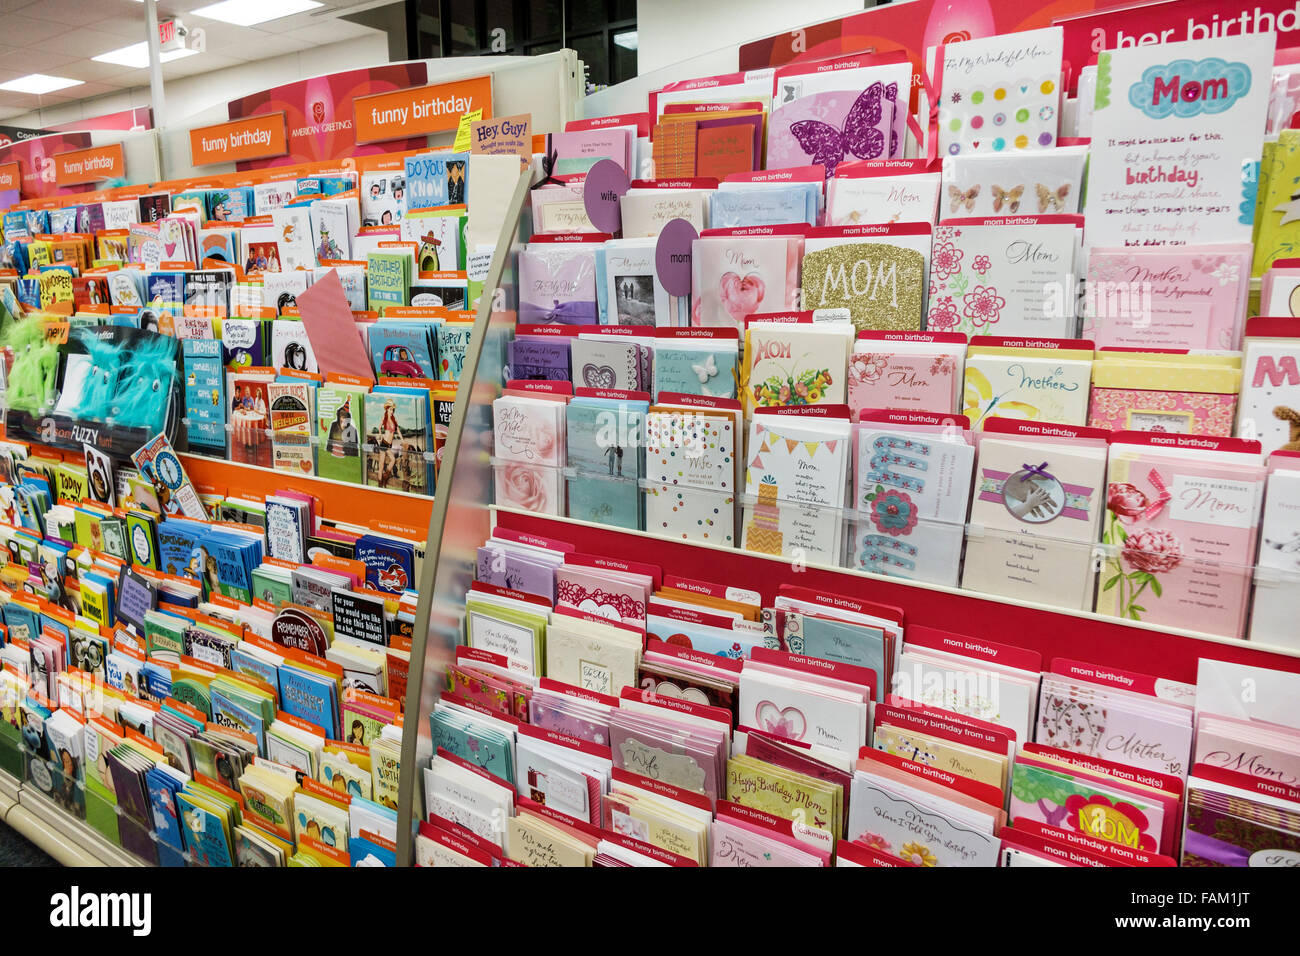 Gainesville Florida CVS Pharmacy Drugstore Inside Sale Display Greeting Cards